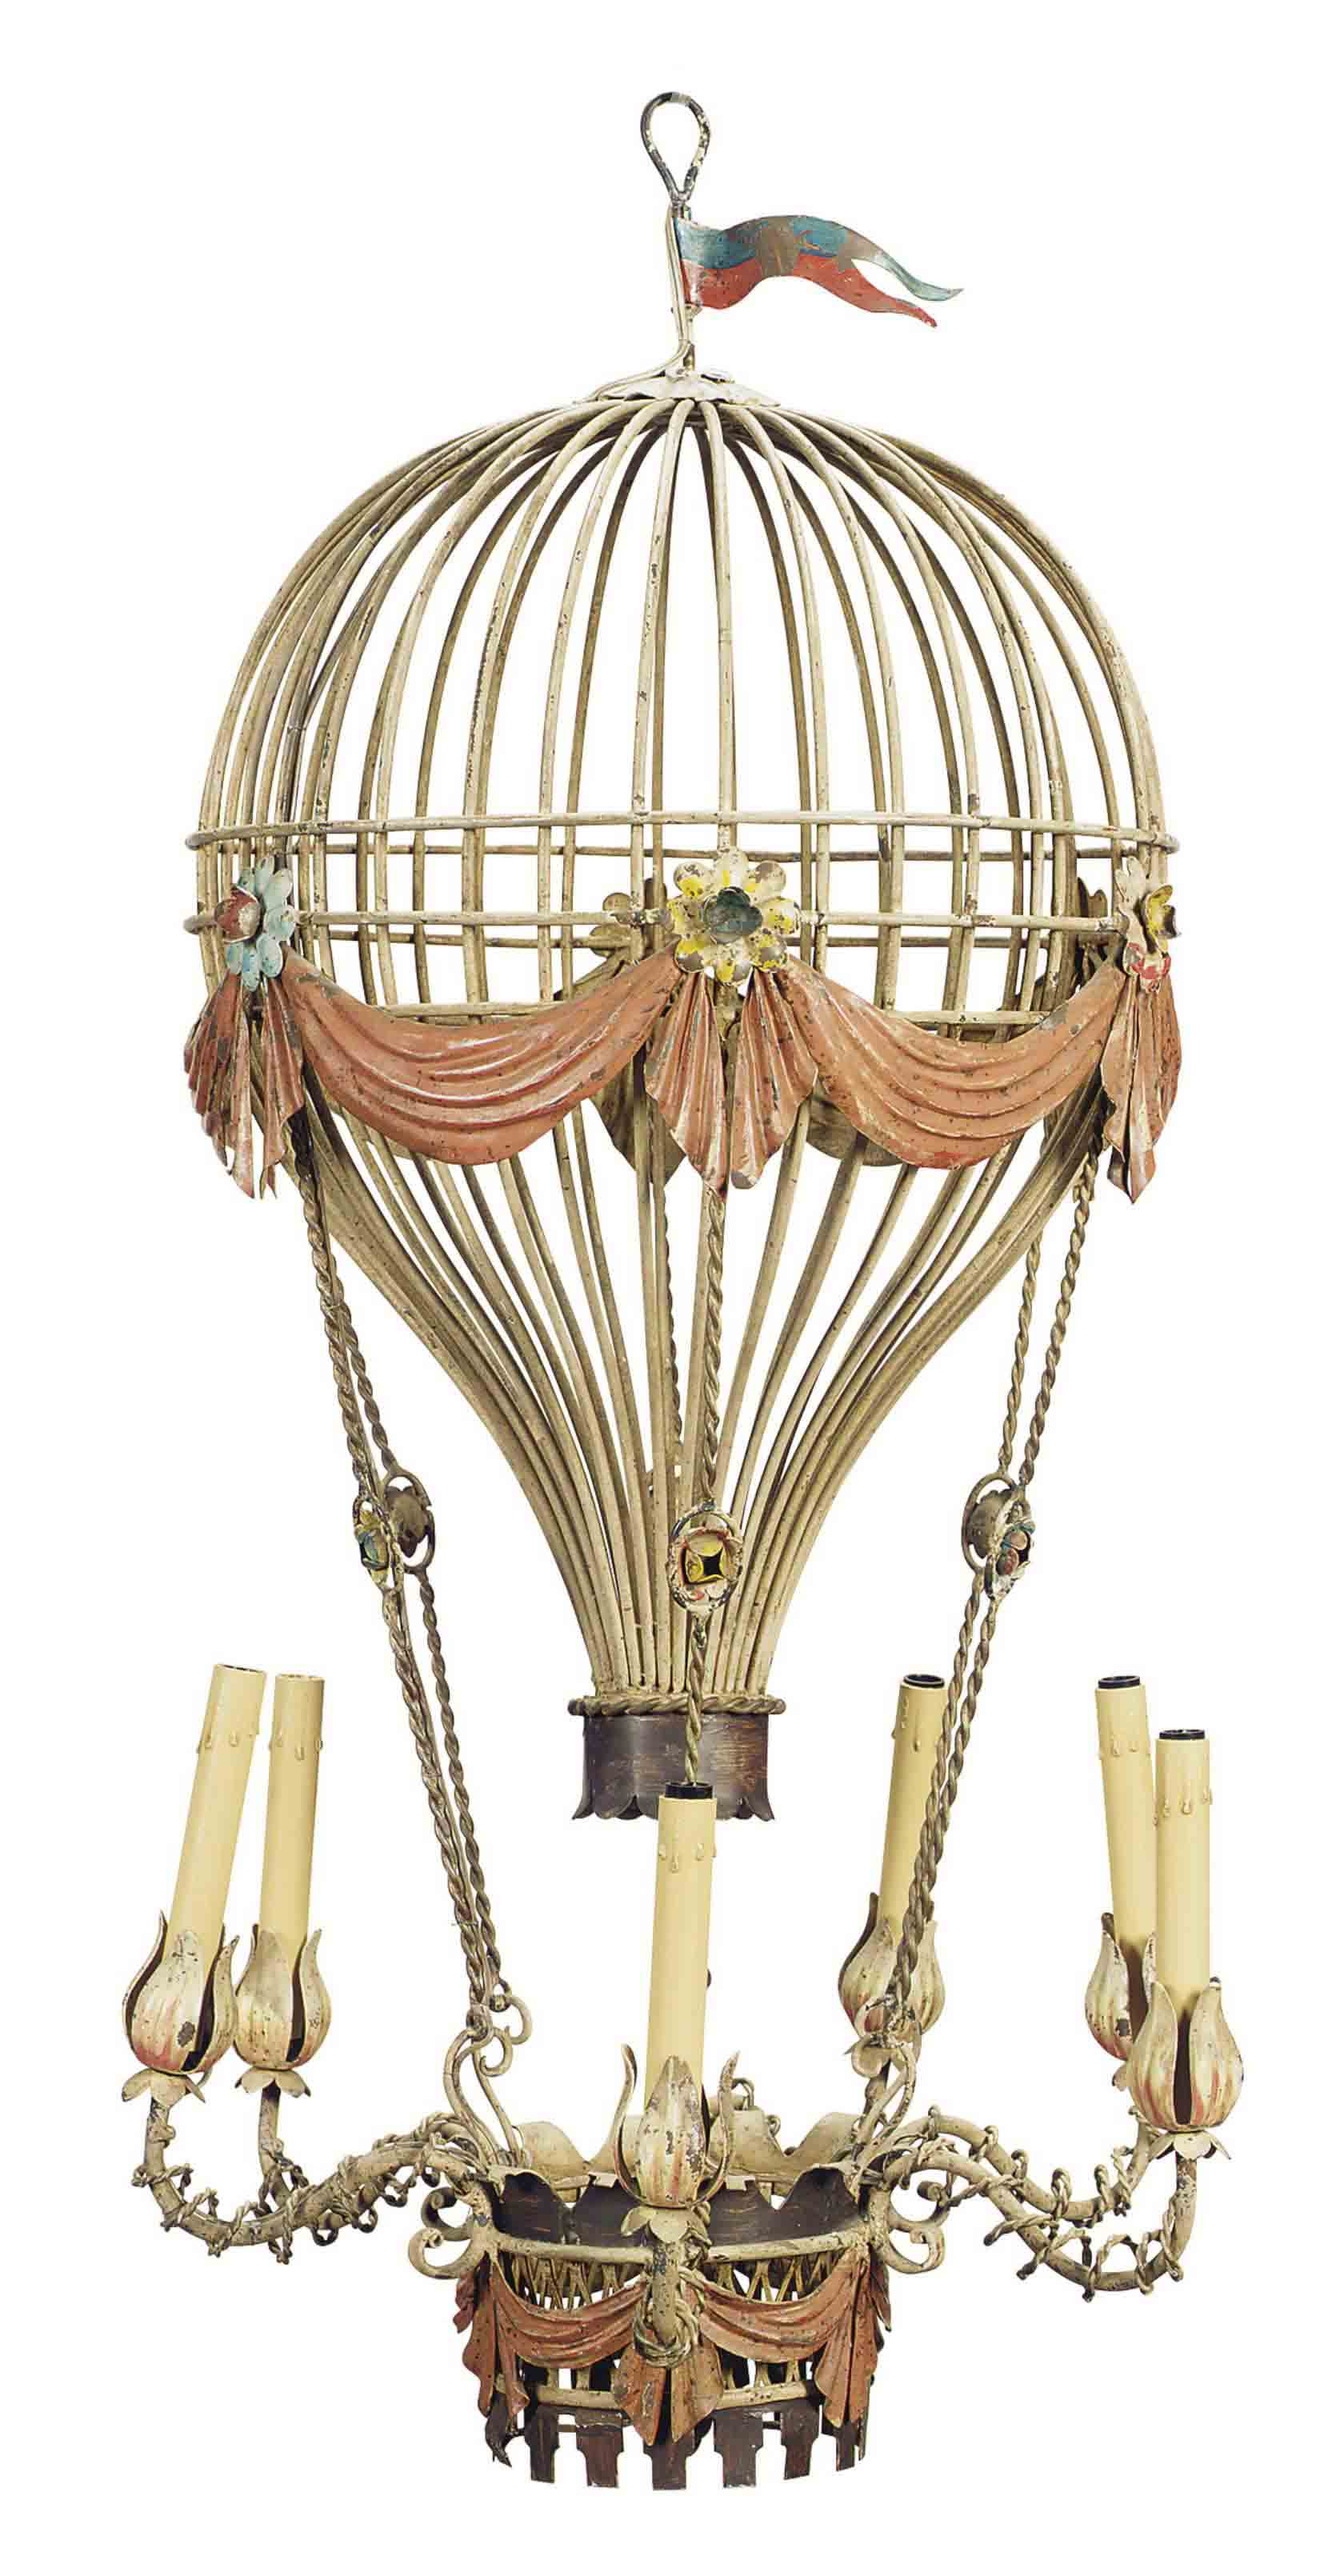 hot lights paper all with mobile japanese lit a made has air balloon sparkled ball mini from chandelier up the